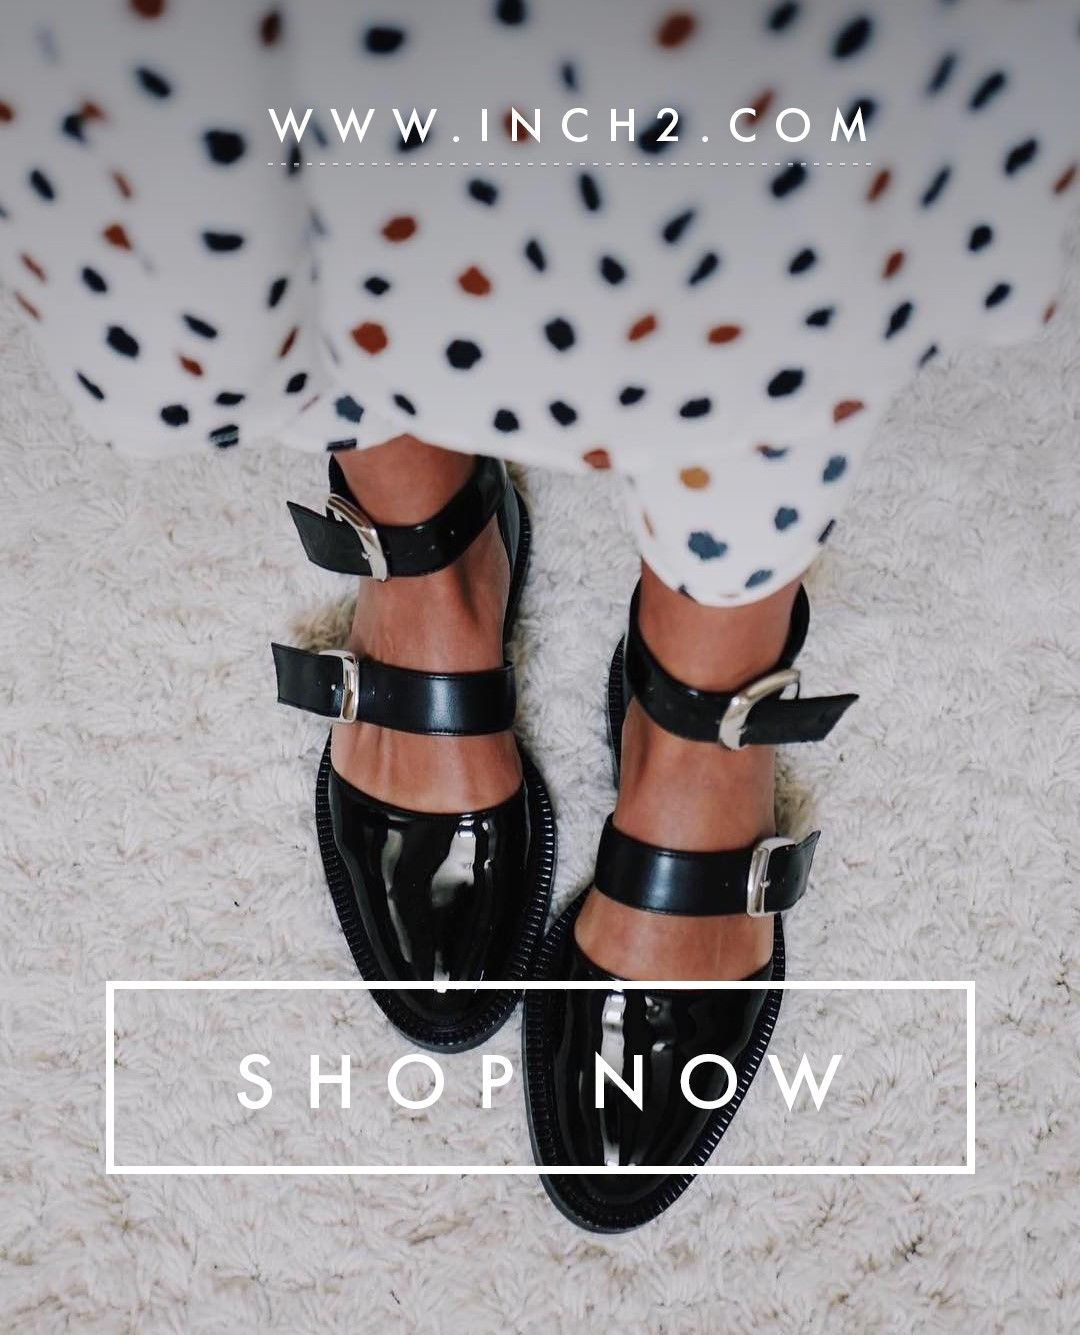 88de00be5da Women s shoes with a strong charismatic personality! FLAT SOLE BLACK CAVIAR  SANDALS. These statement sandals feature ankle straps